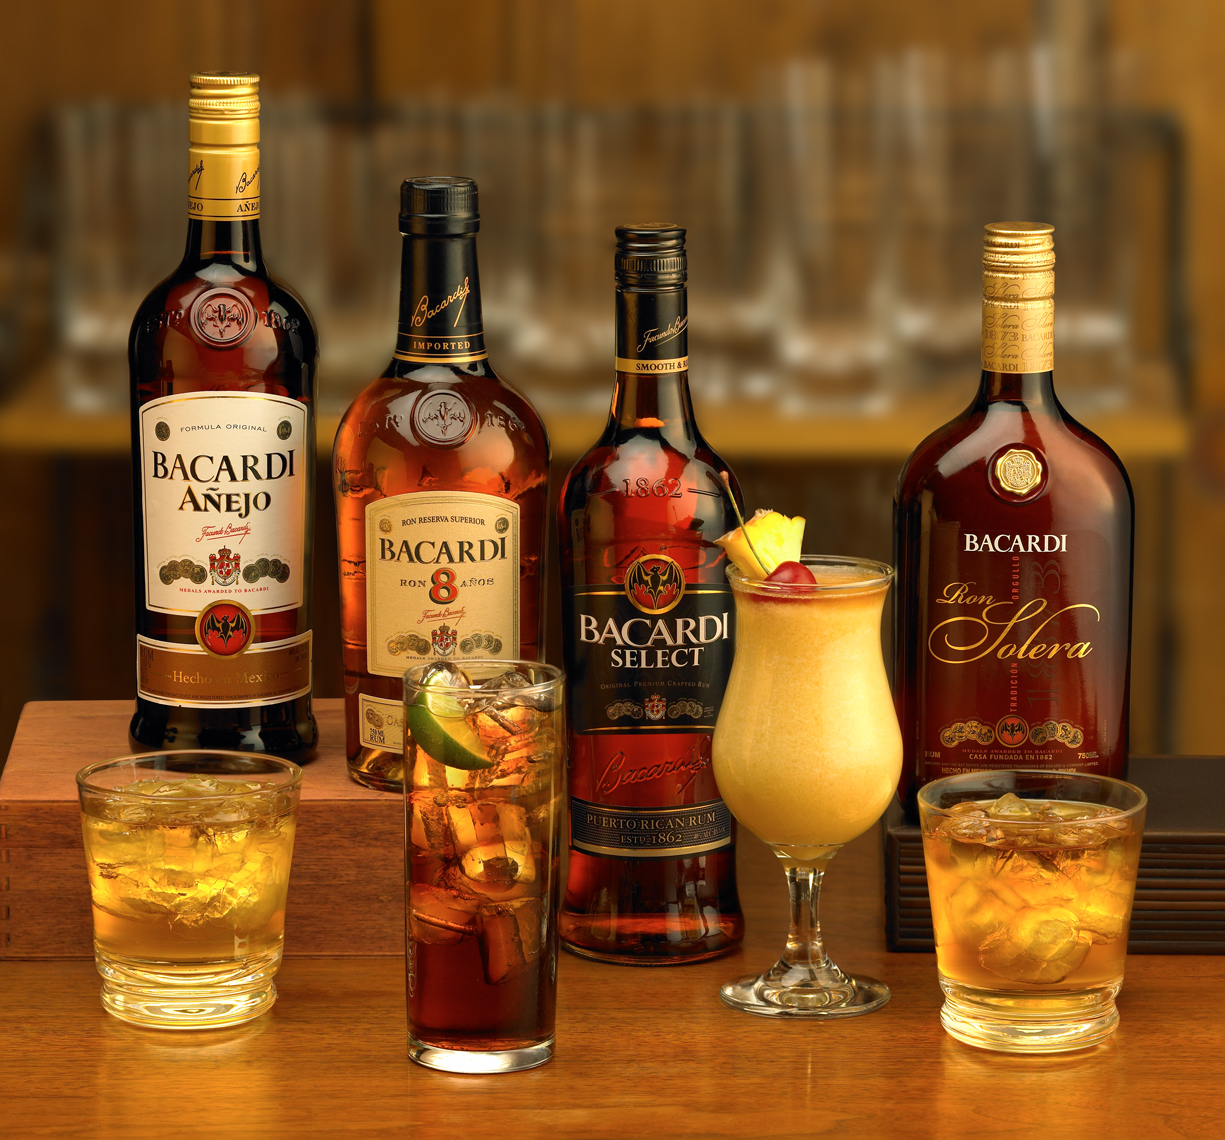 Bacardi dark rums with cocktails